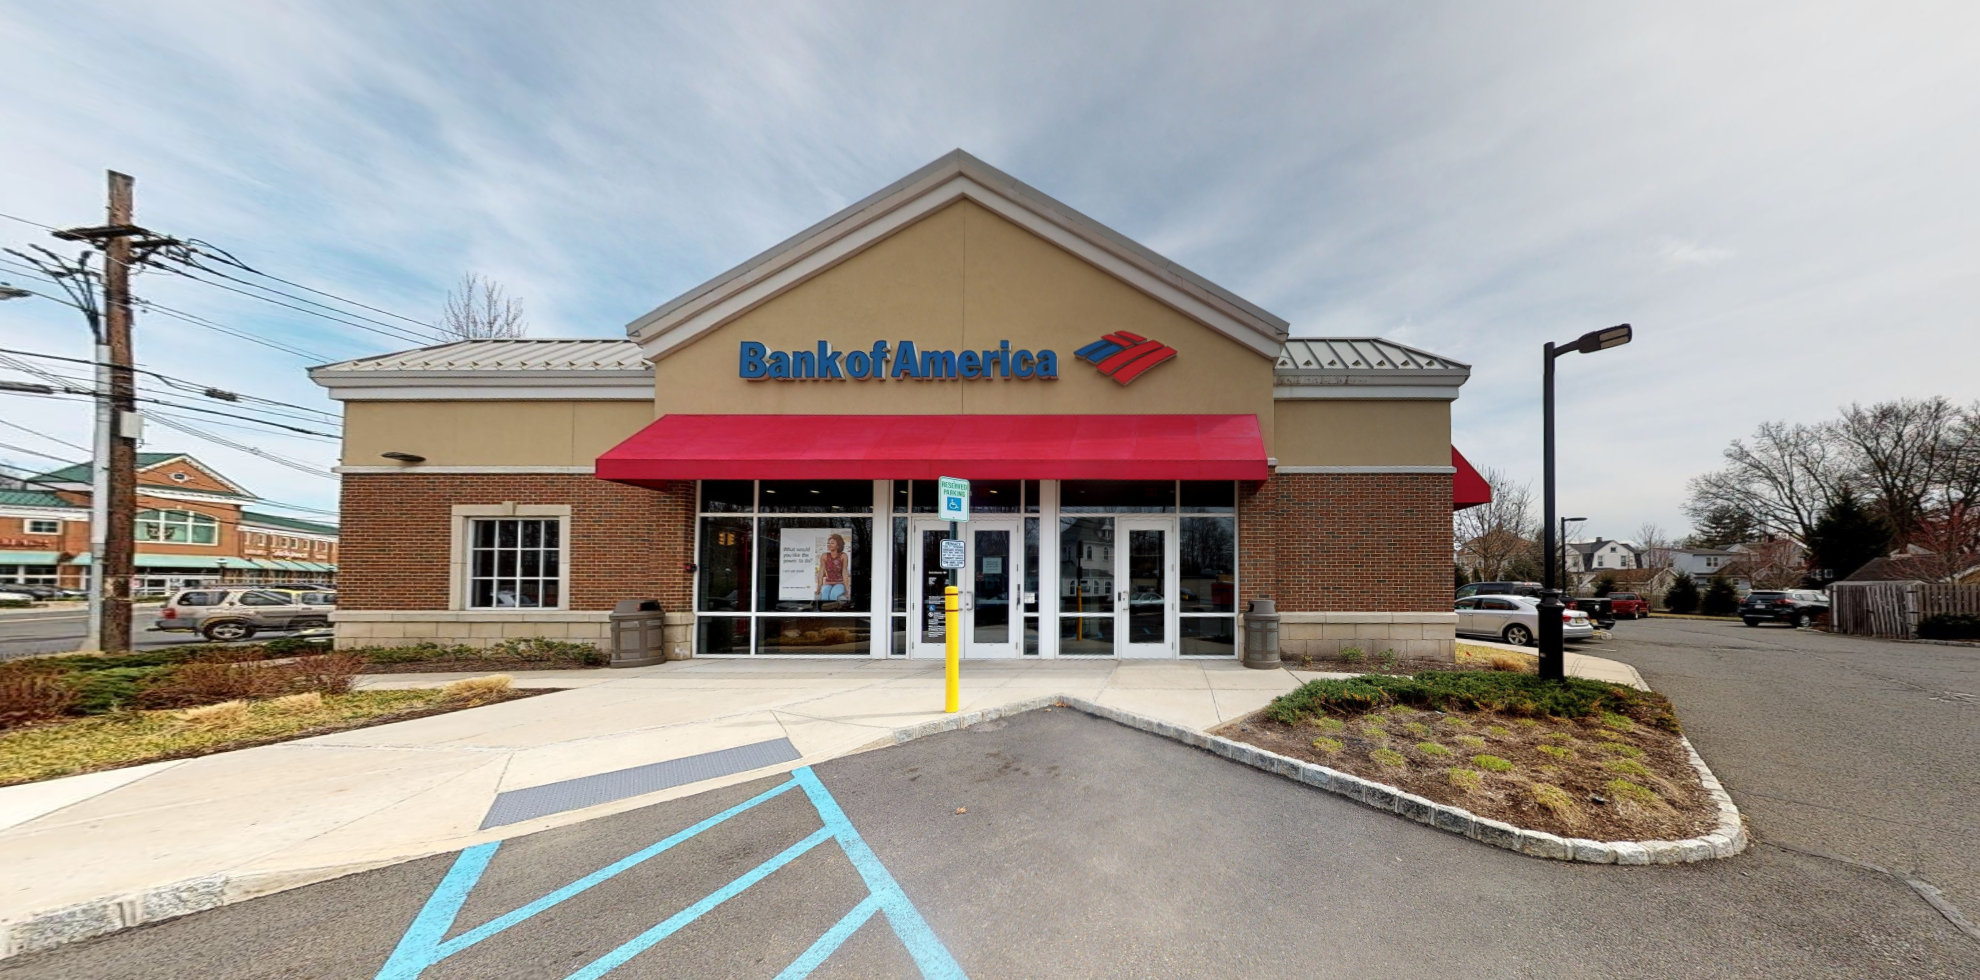 Bank of America financial center with drive-thru ATM | 101 South Ave W, Cranford, NJ 07016